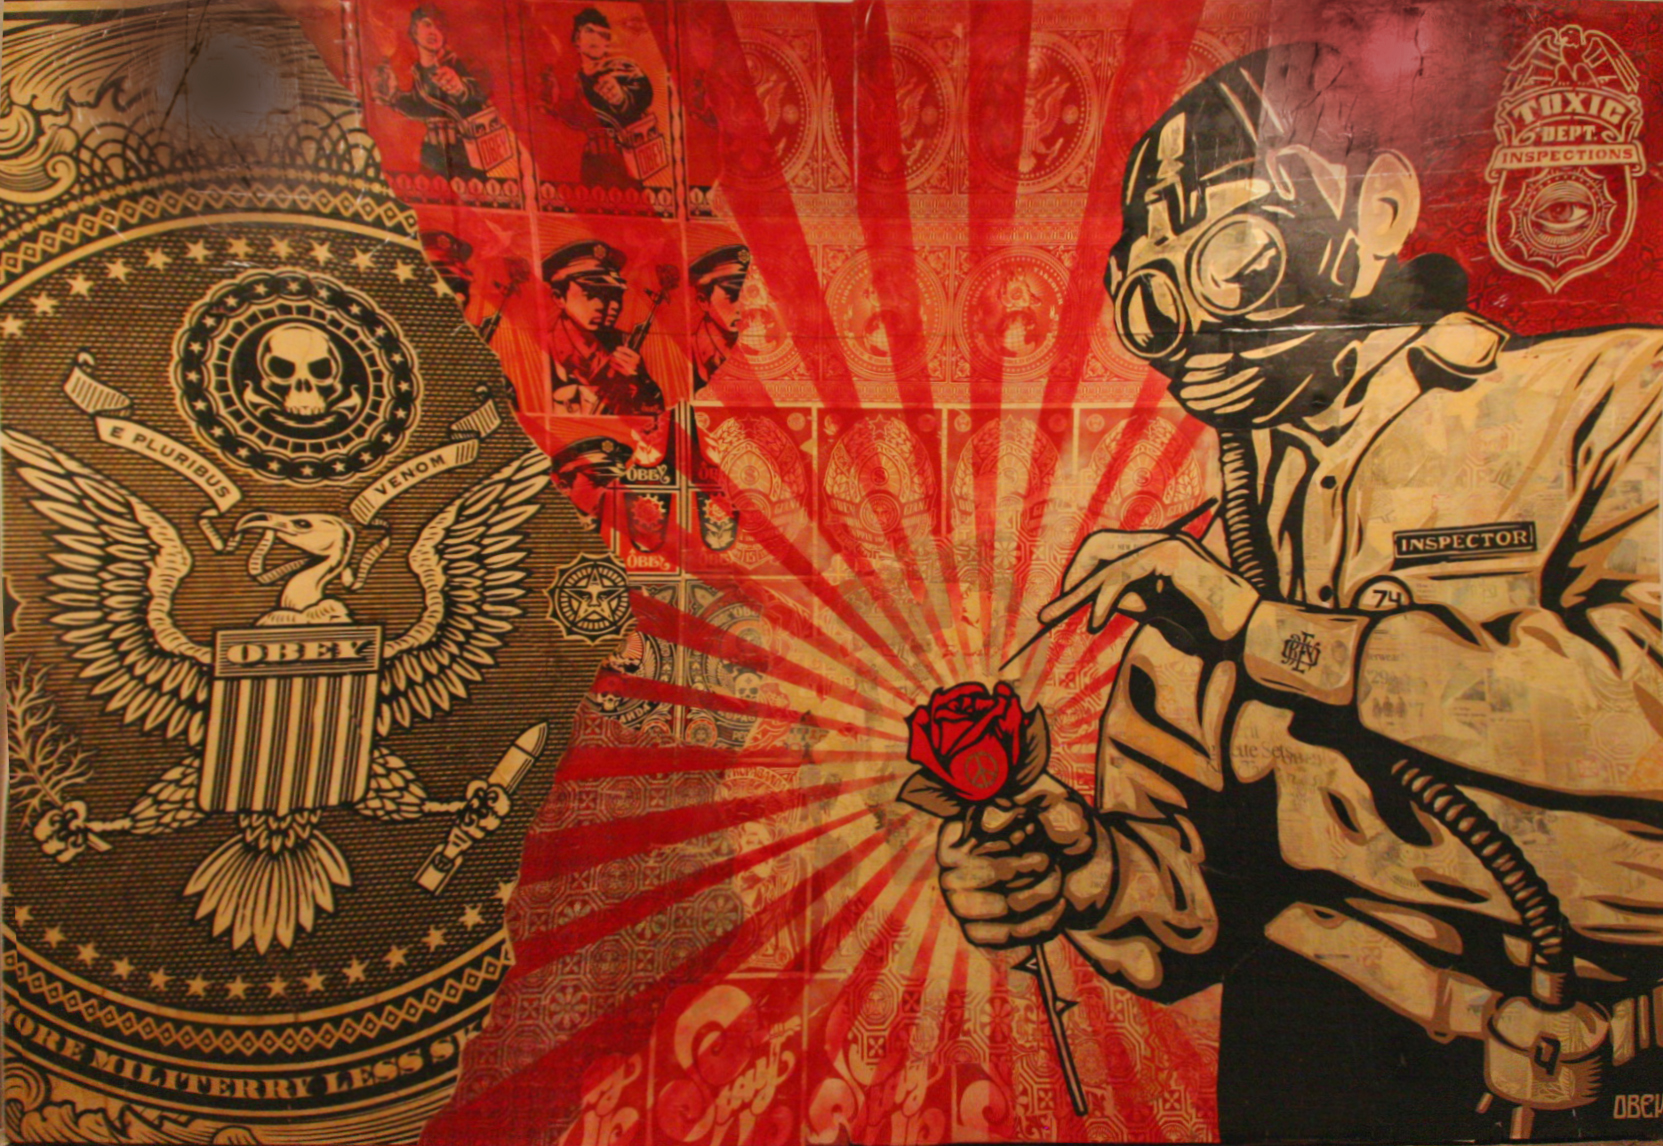 obey wallpaper   183120   High Quality and Resolution Wallpapers 1663x1146